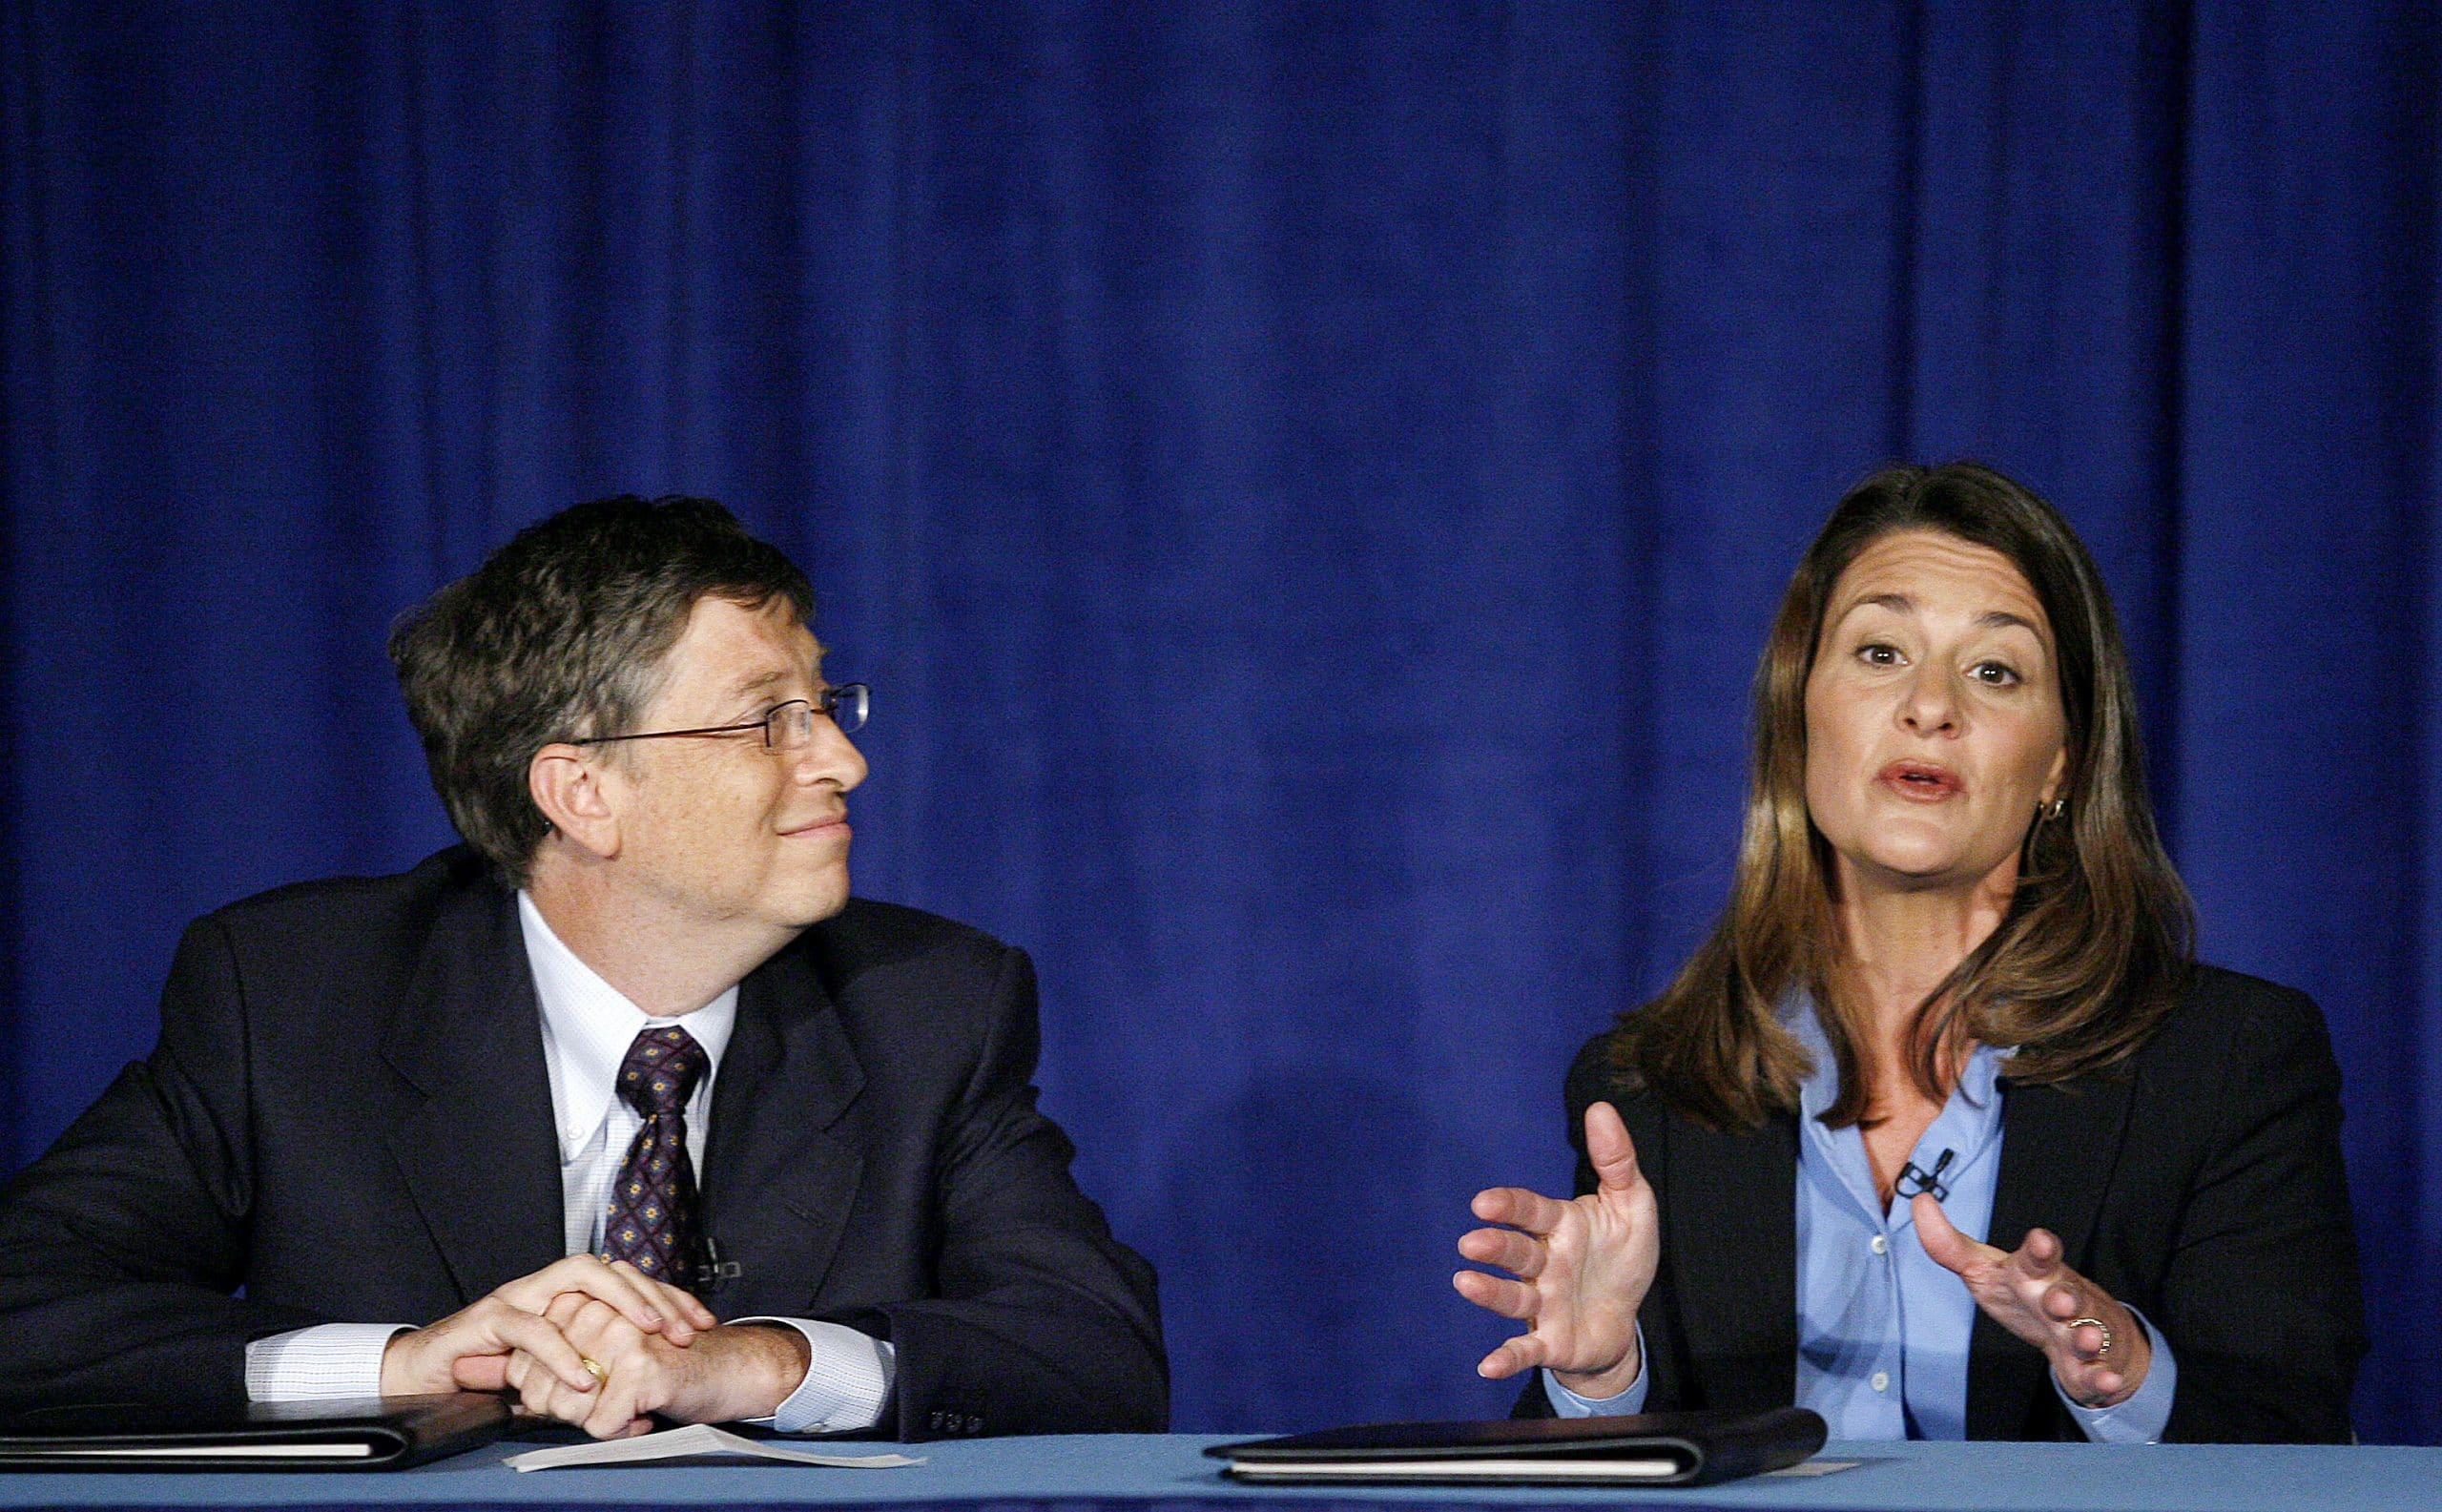 Bill Gates listens in while his wife Melinda Gates takes a question